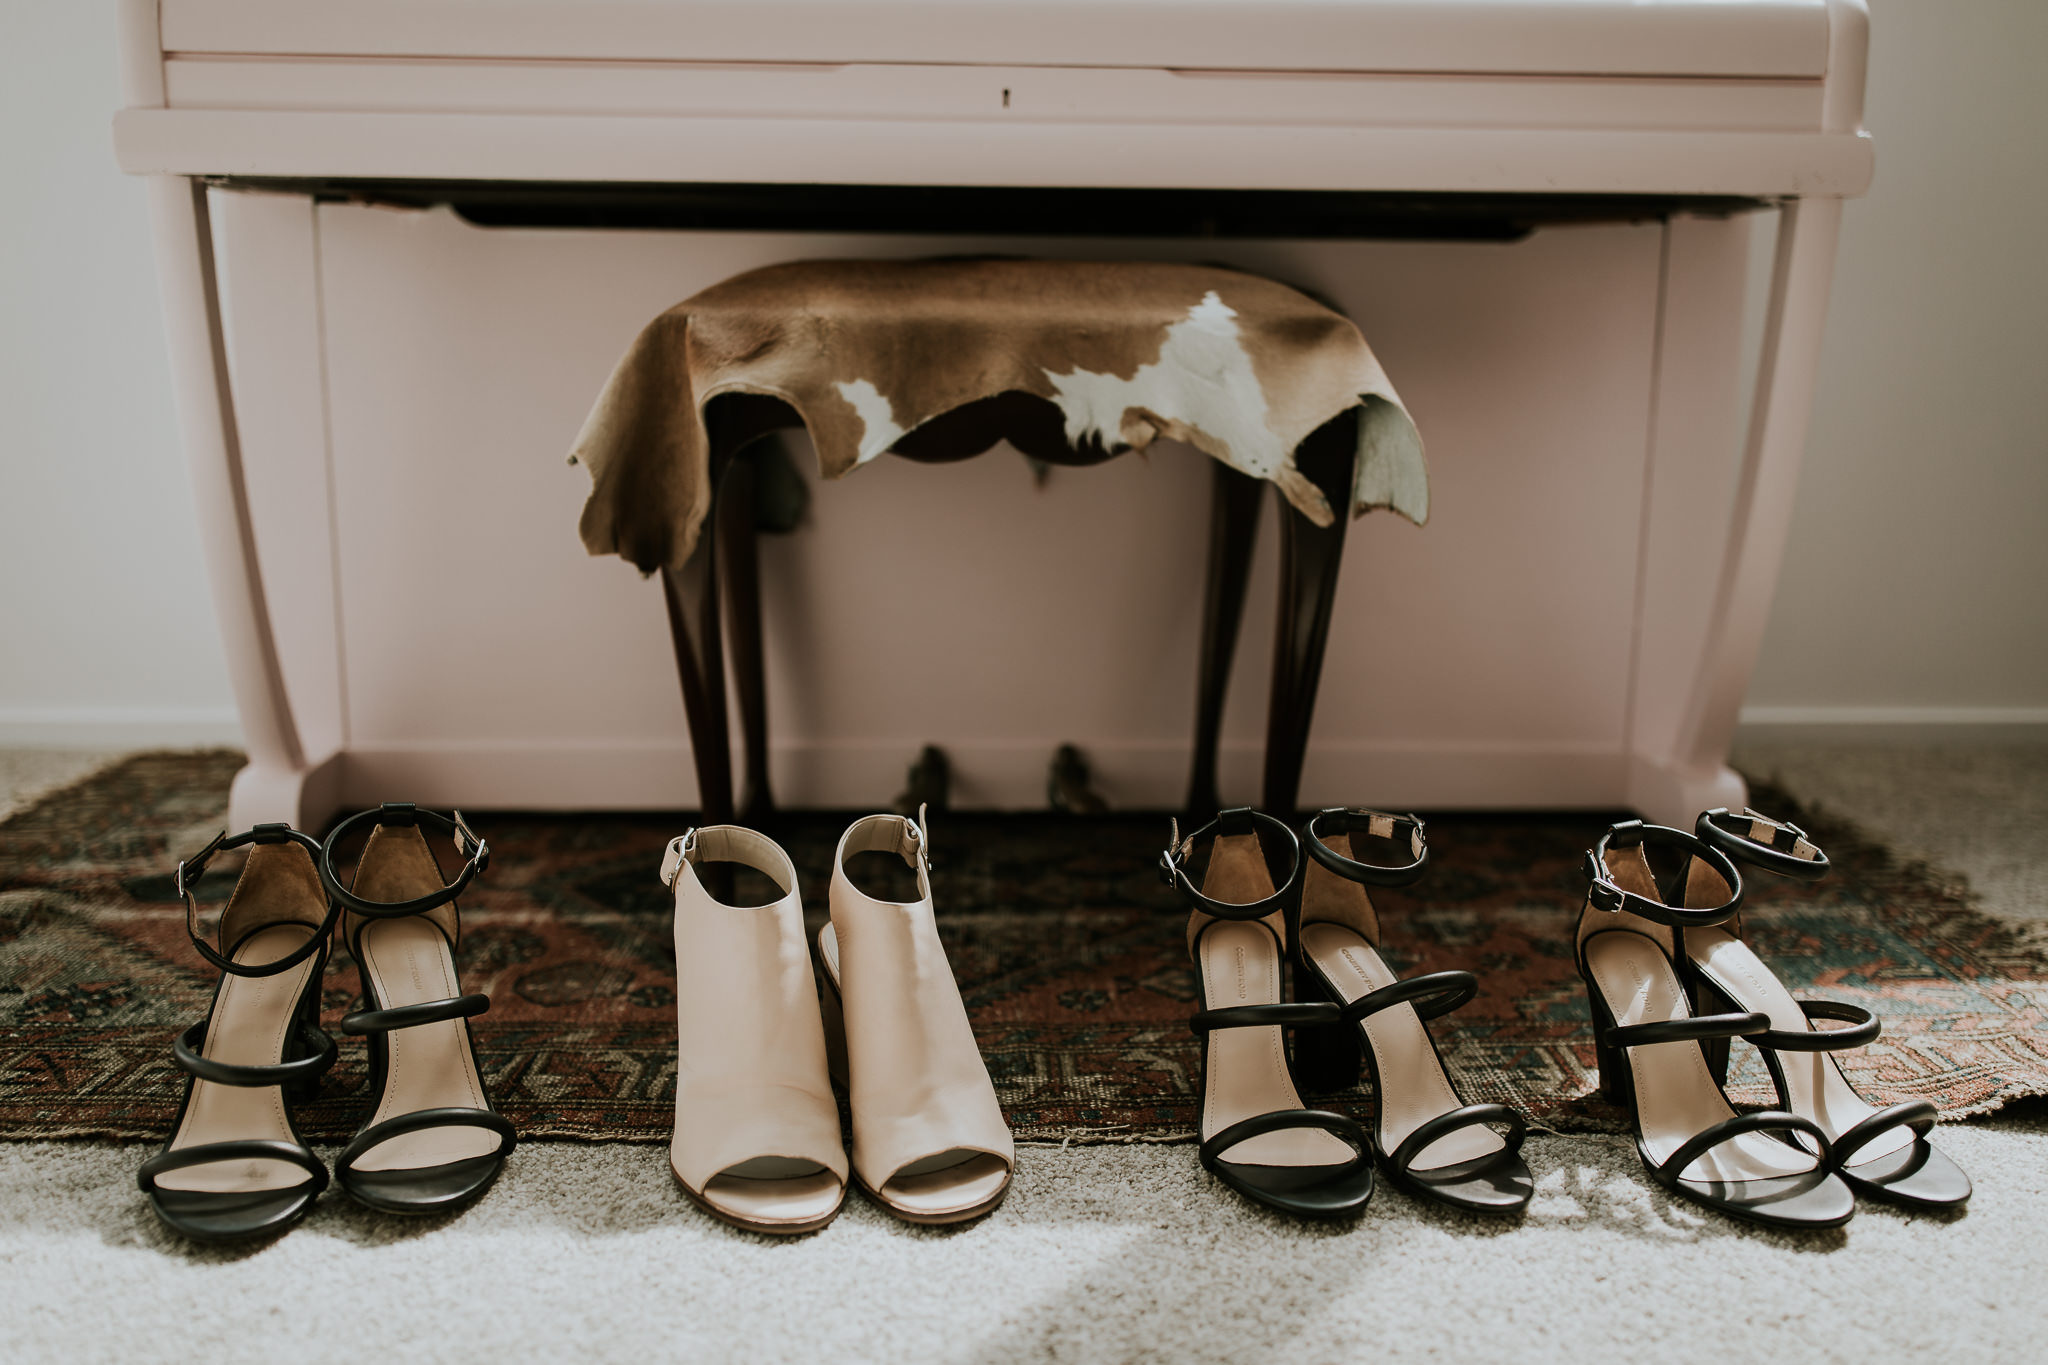 Bride and bridesmaids shoes displayed on rug during getting ready on wedding day